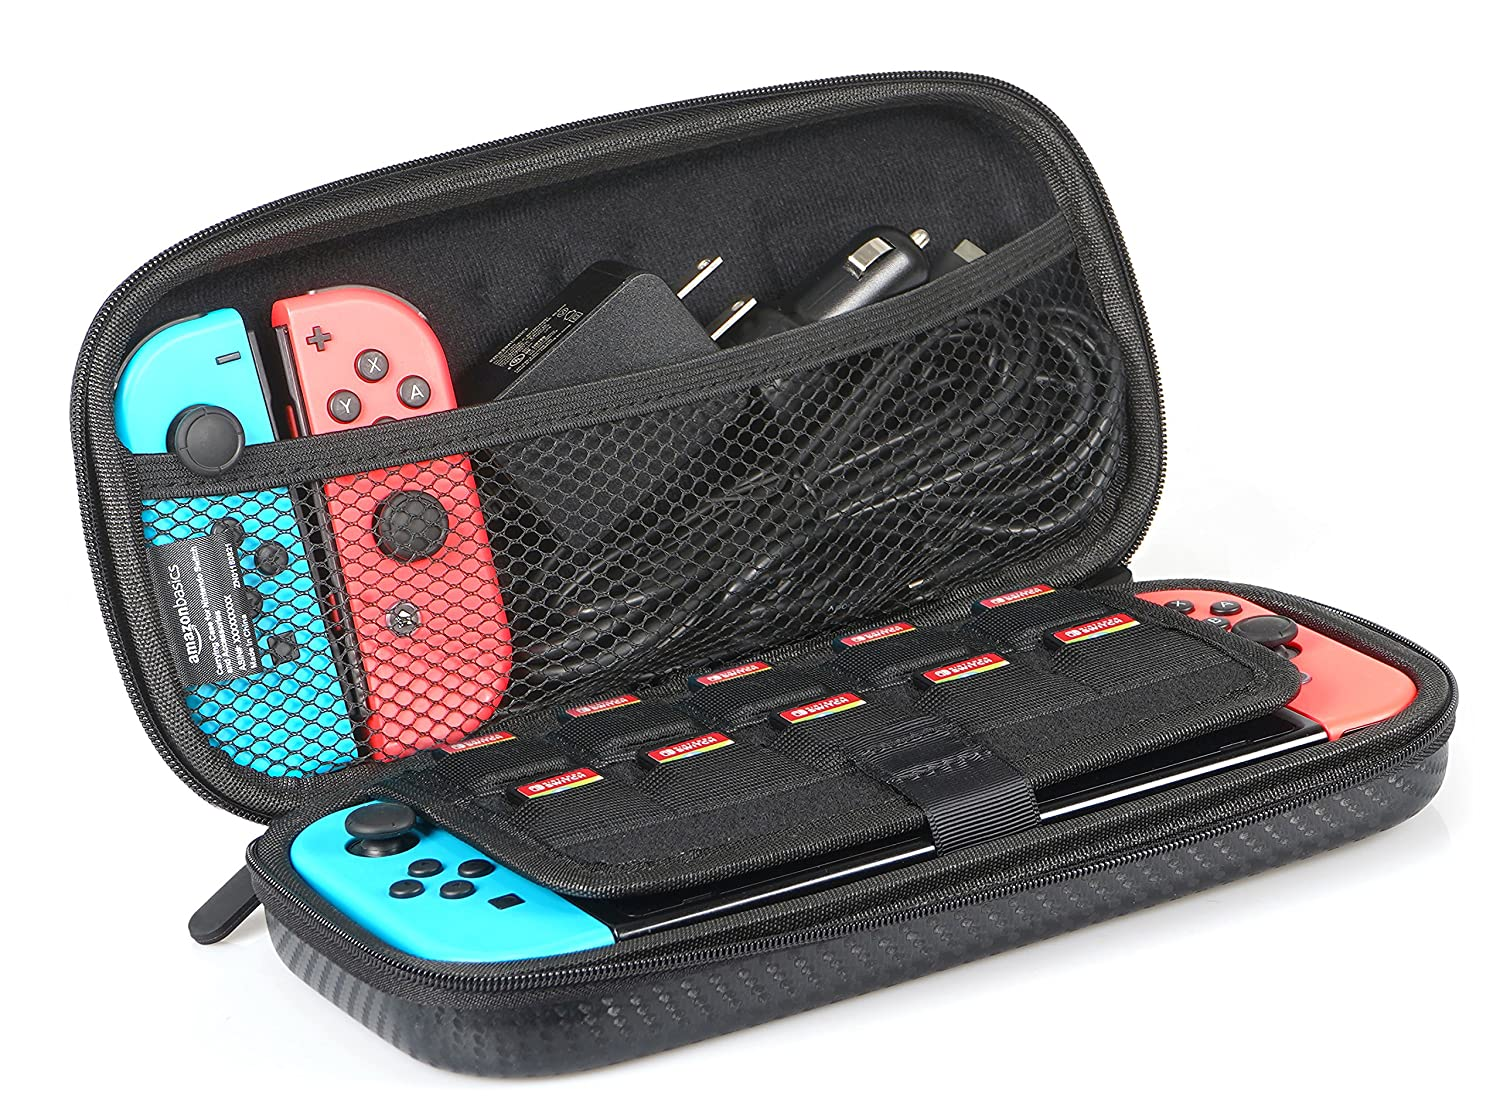 Basics Carrying Case for Nintendo Switch and Accessories - 10 x 2 x 5 Inches, Black: Video Games